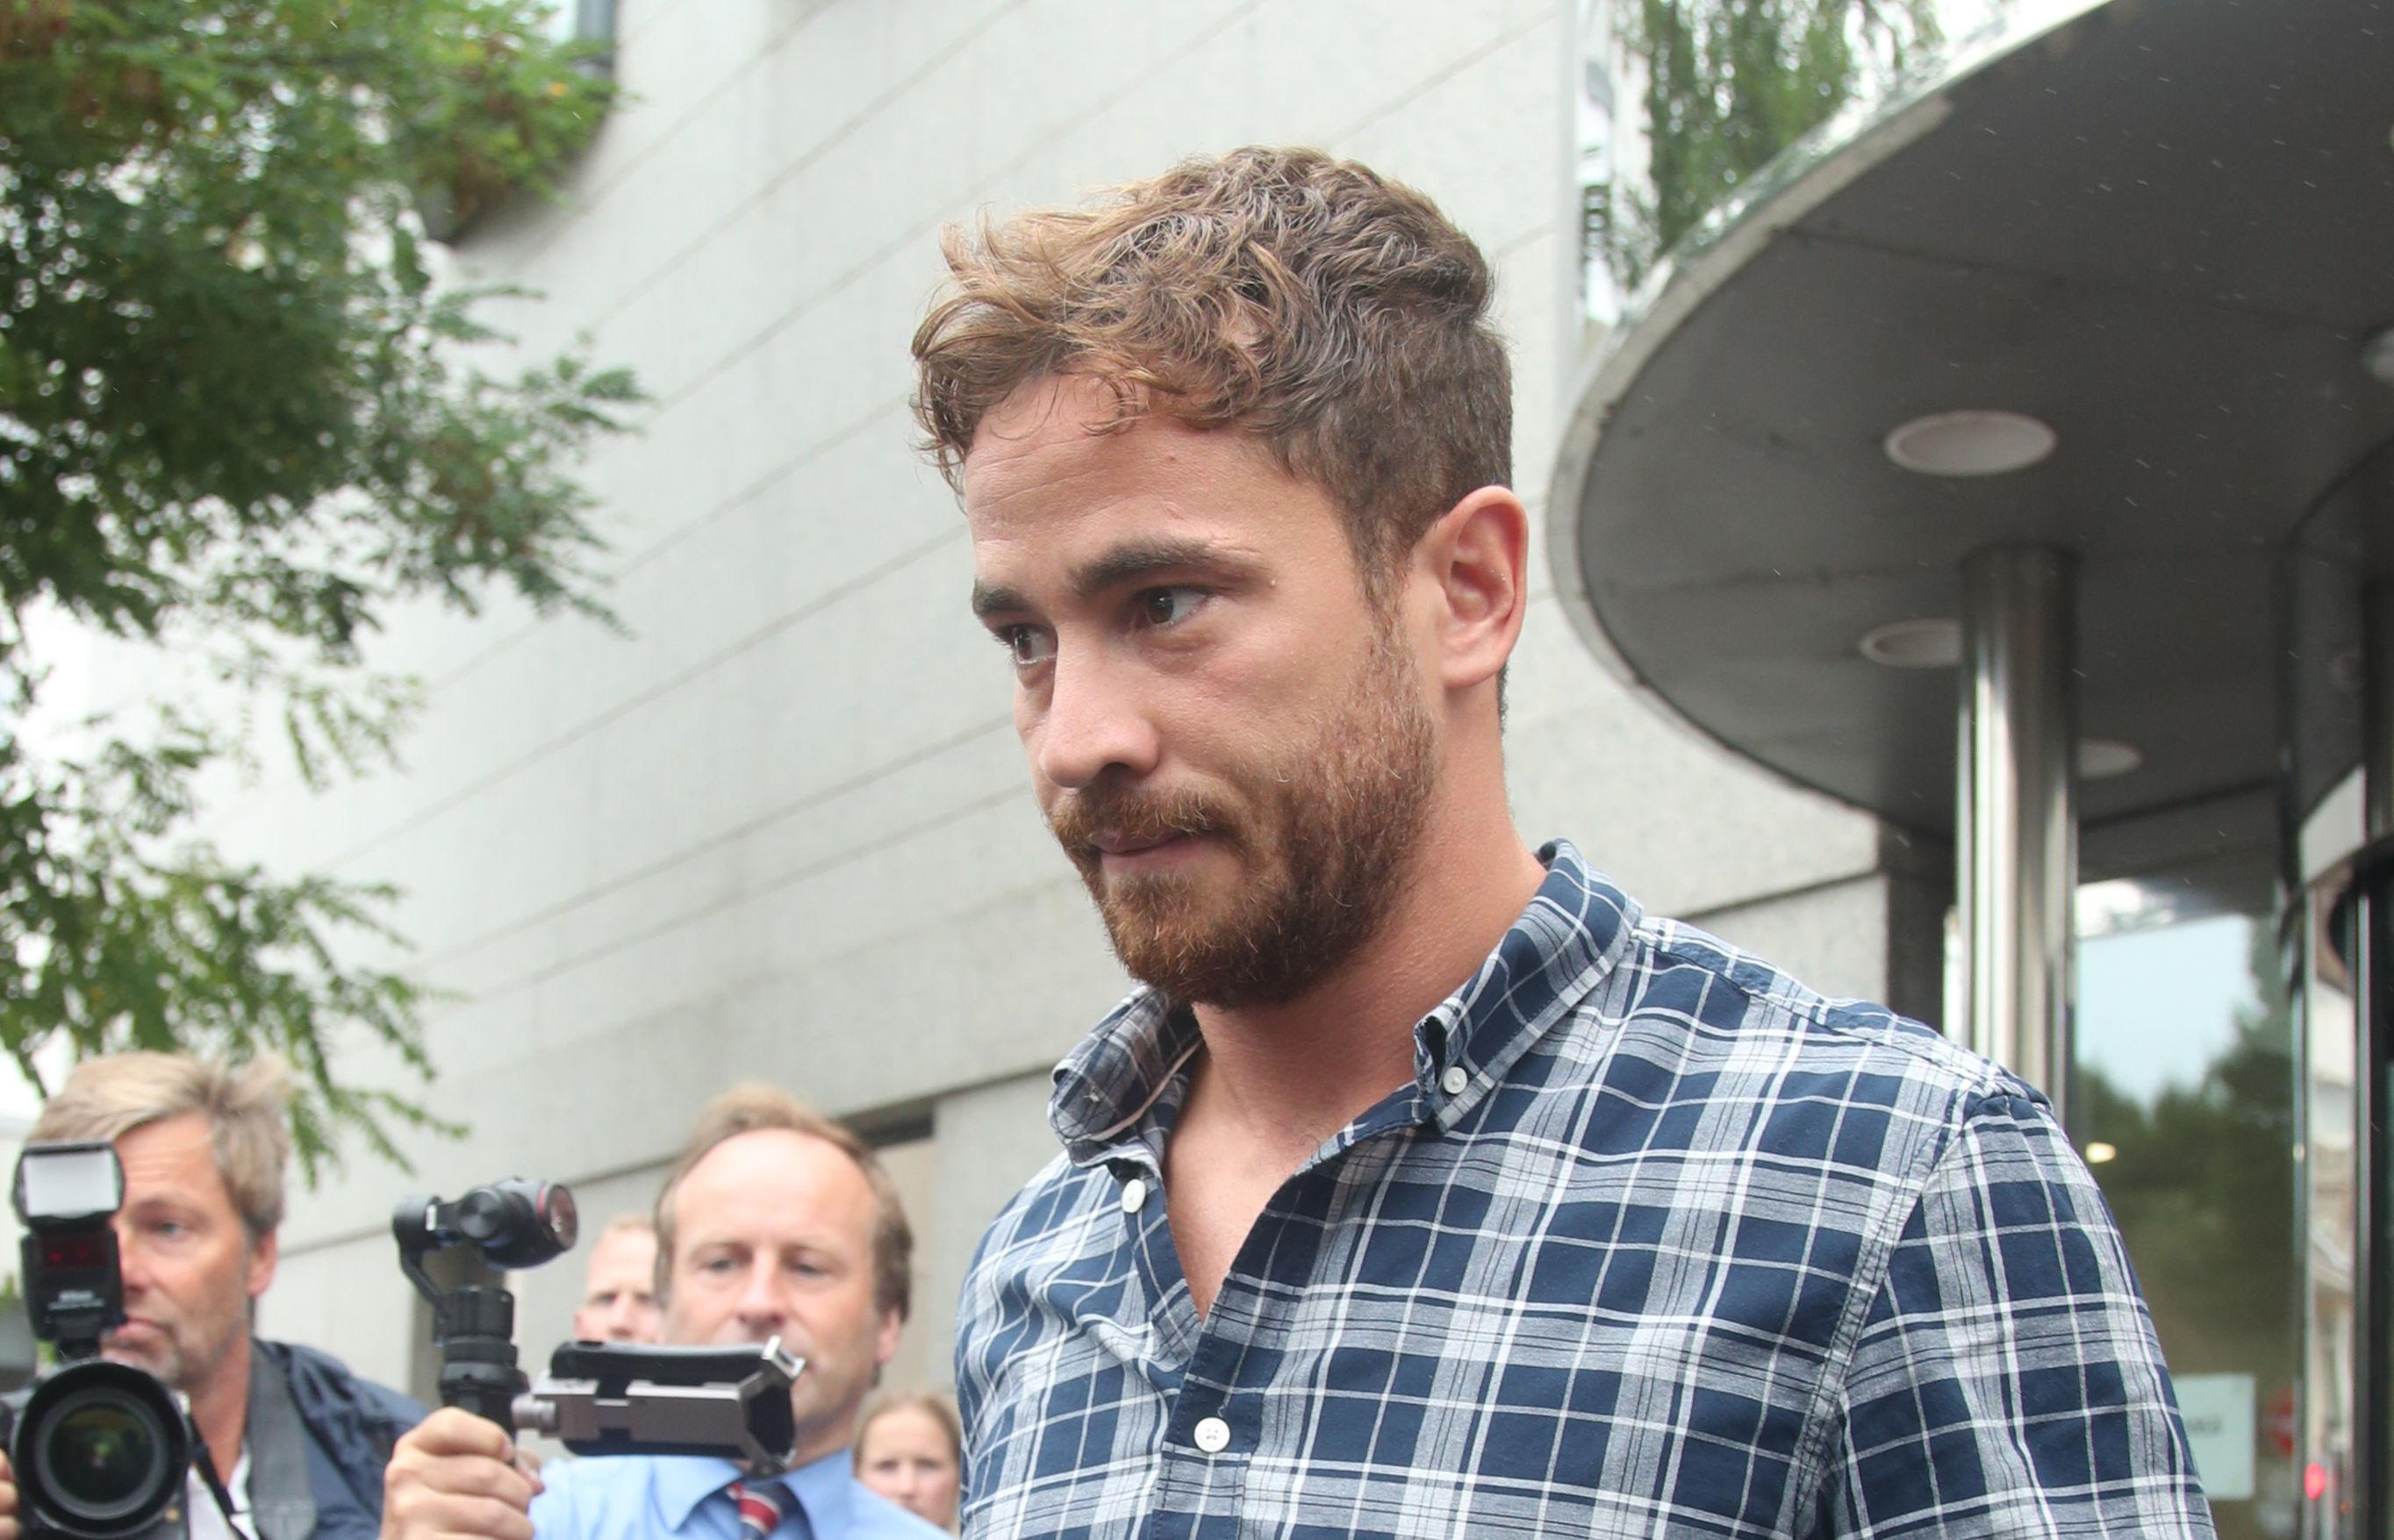 Danny Cipriani faces yet another hearing next week after being charged by the RFU